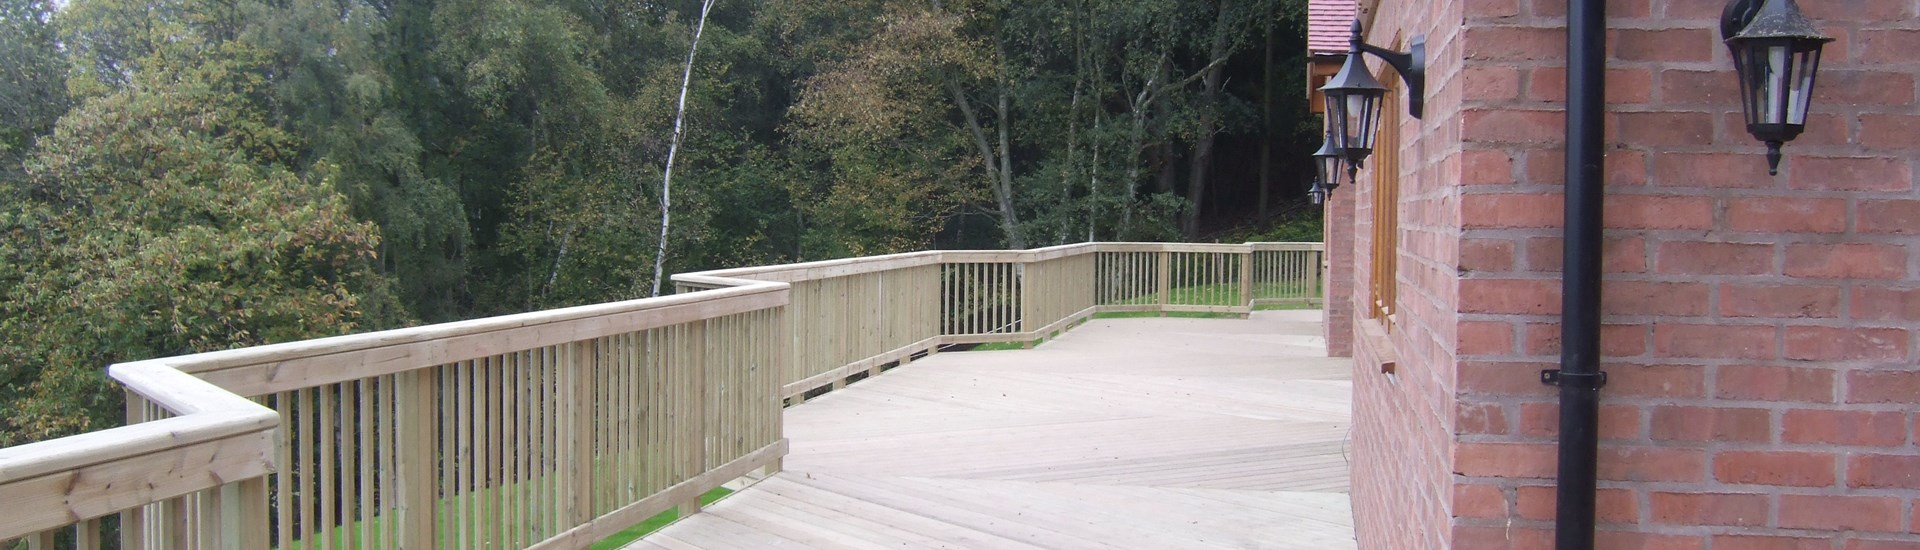 Decking Installation Guarantee | Deckbuilders